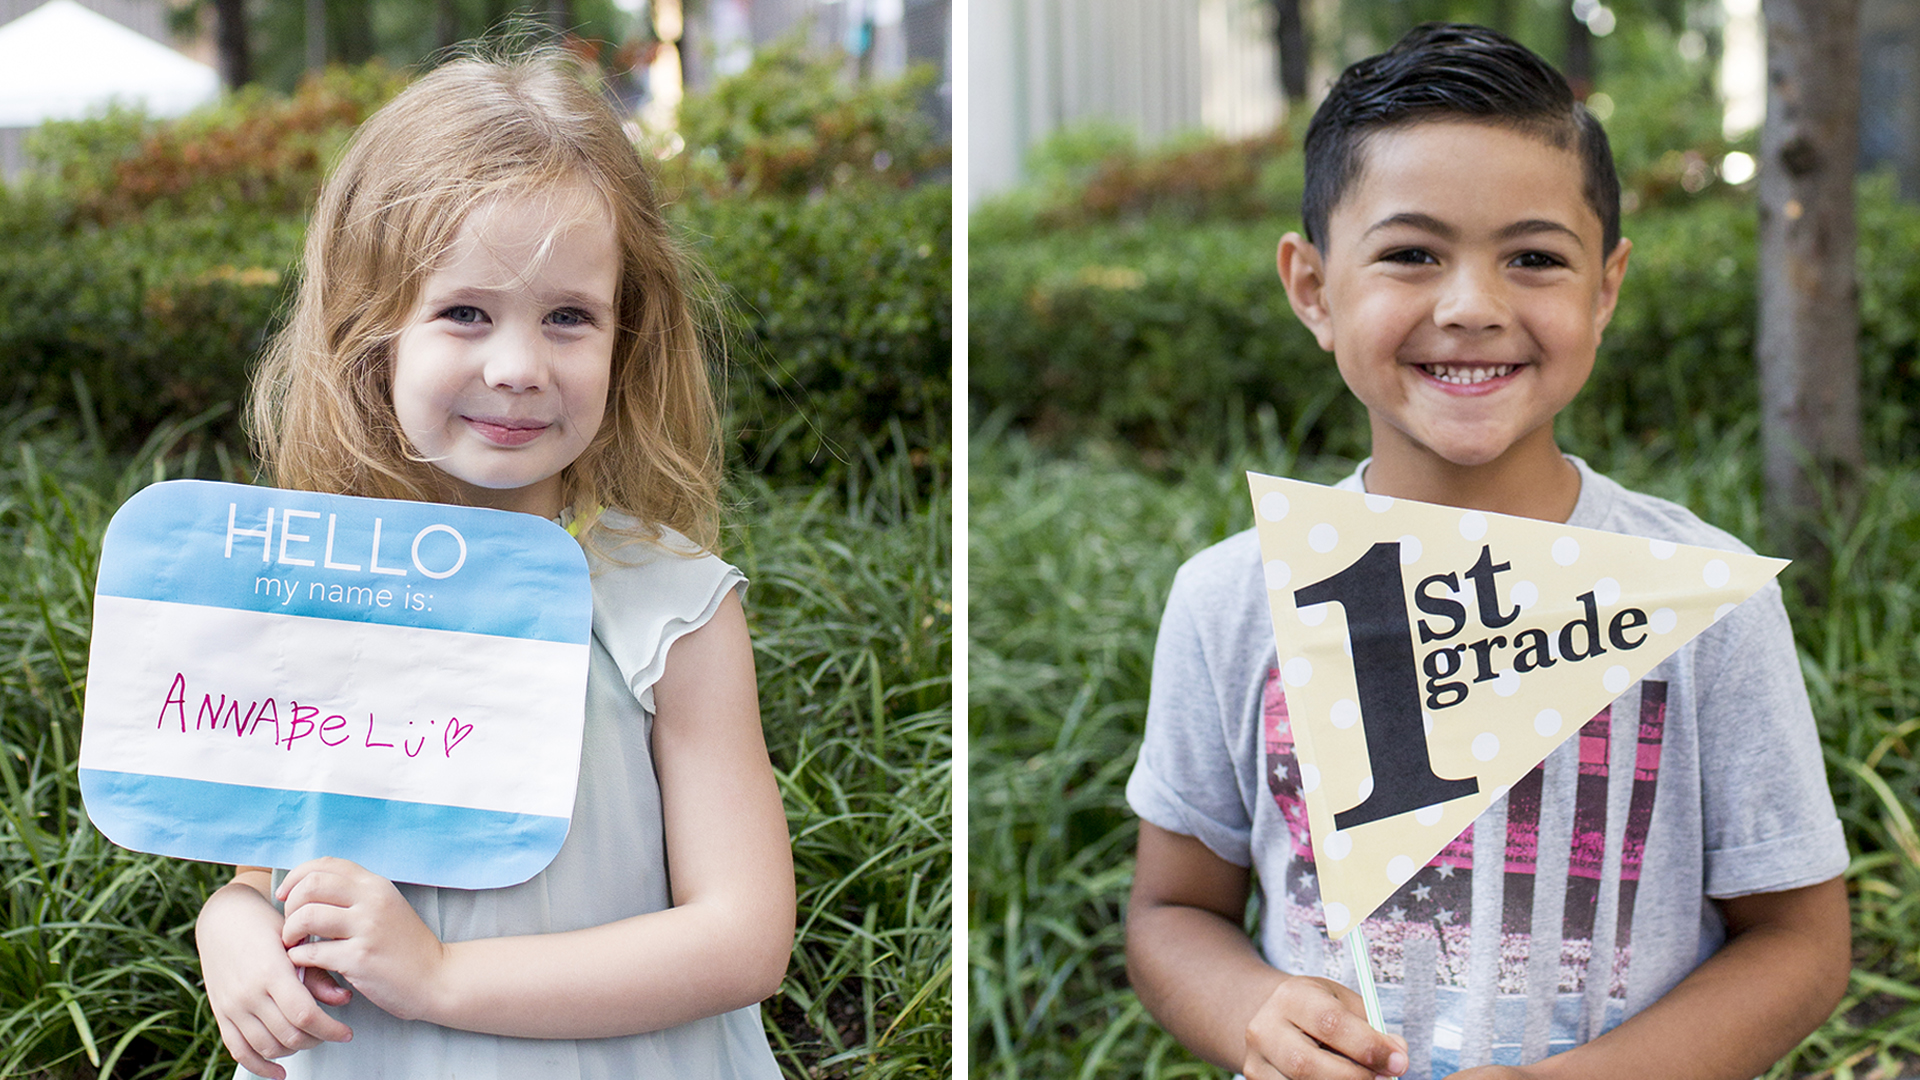 hight resolution of Back to school photos: 10 free printable first day of school signs